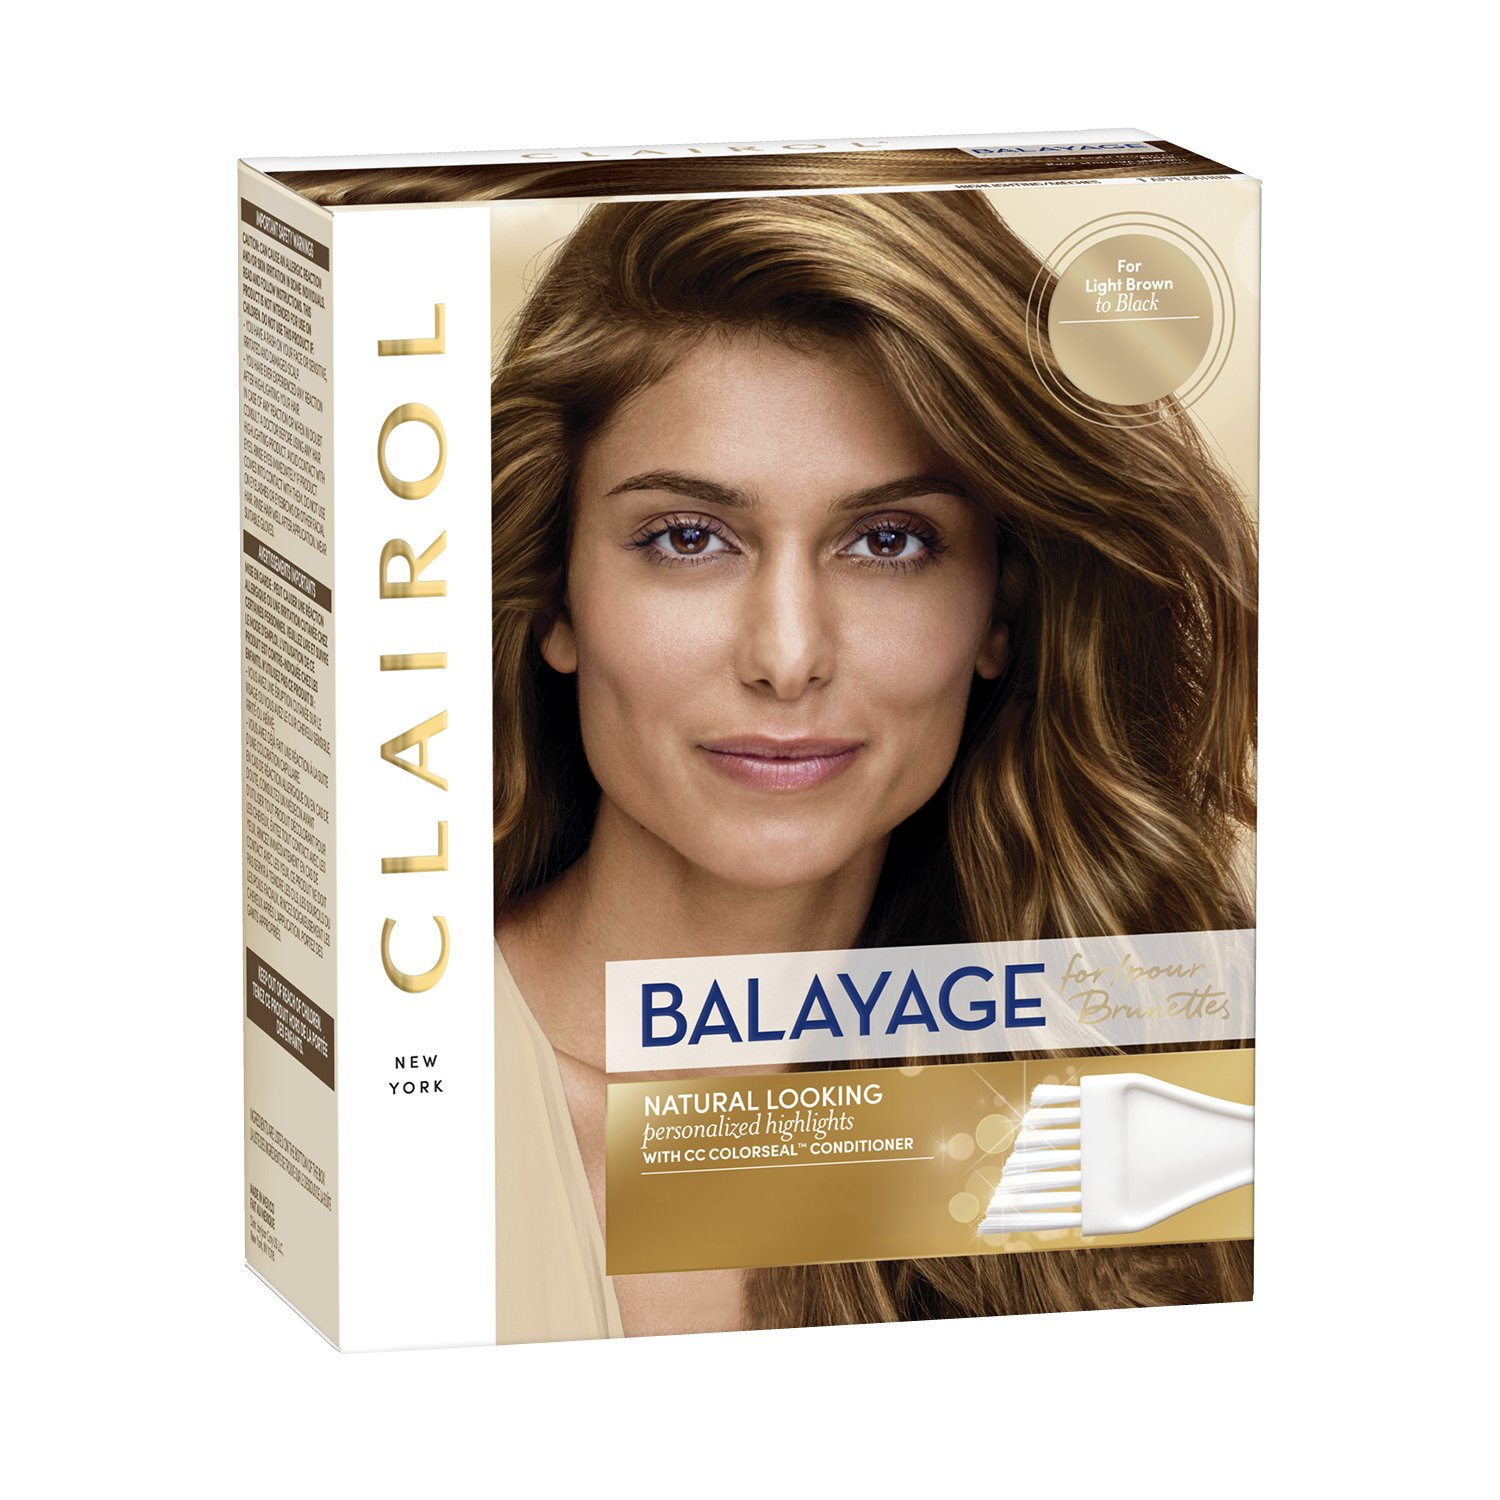 Clairol - Balayage for Blondes Highlighting Kit Coty 0070018117854